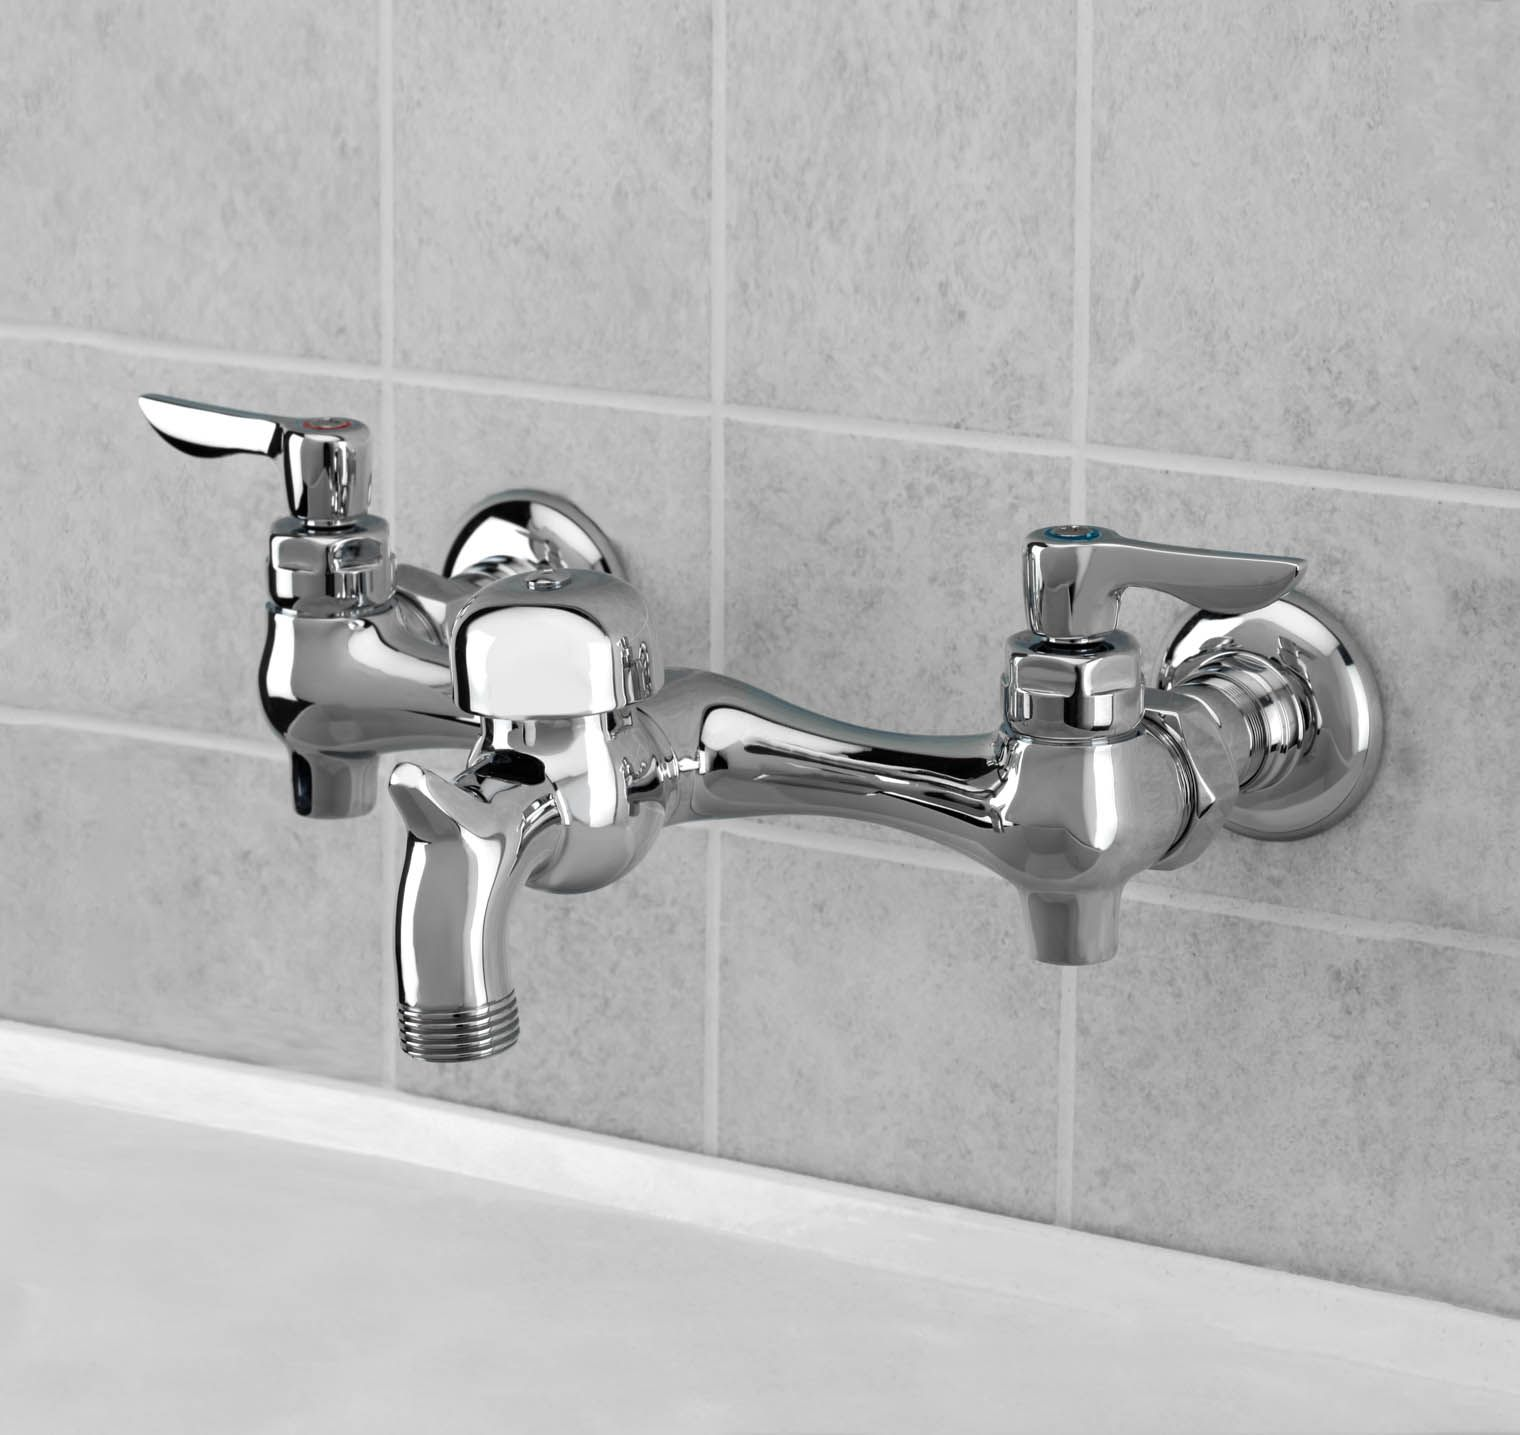 American Standard 8350 243 002 Wall Mount Utility Sink Faucet